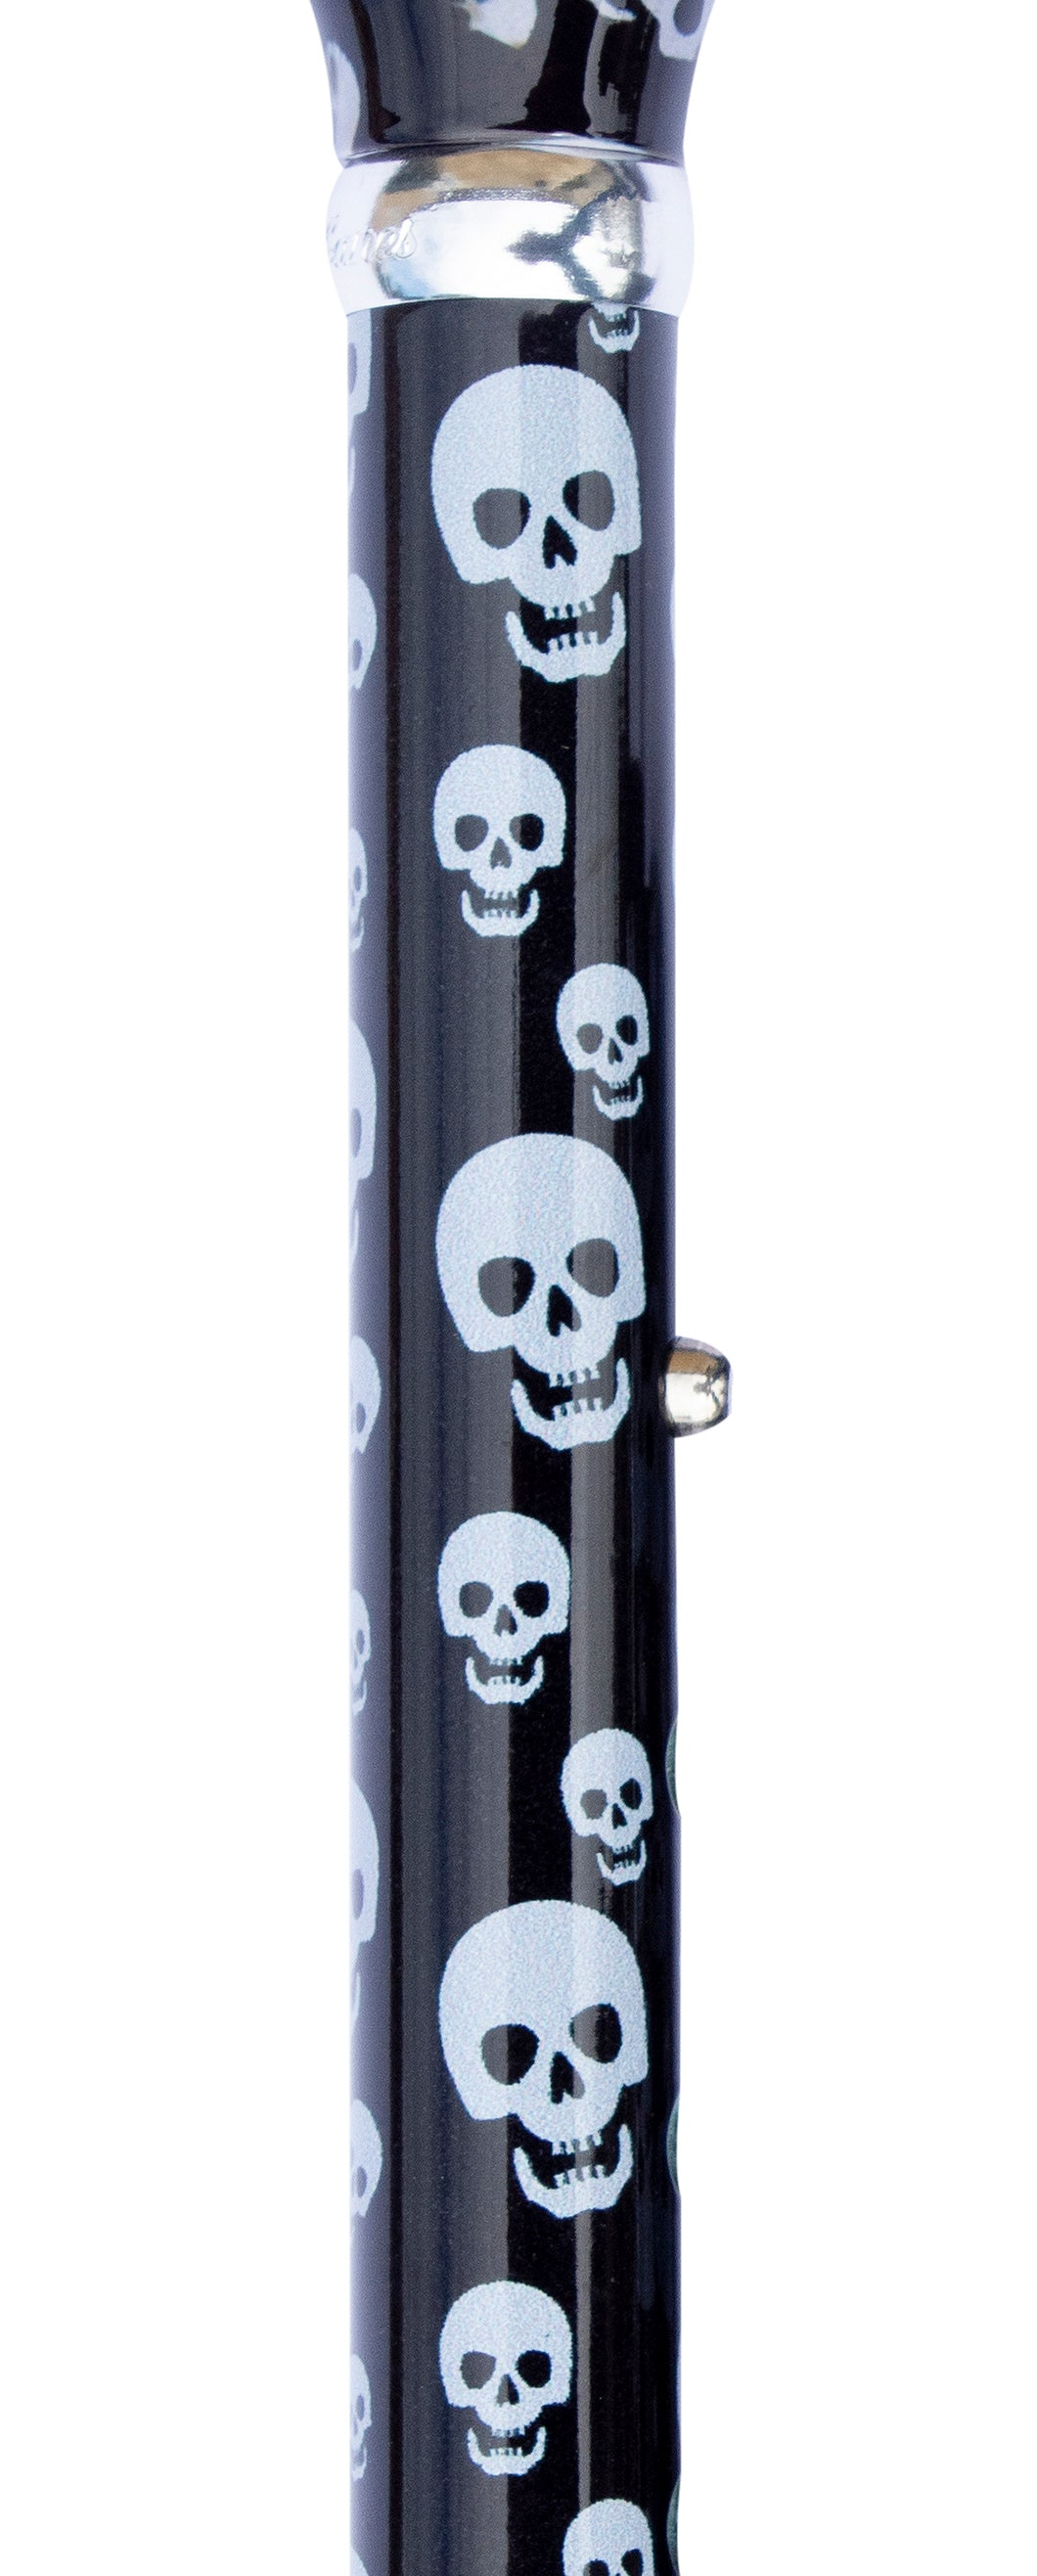 Folding Cane - Contemporary Chic Derby, Adjustable, Skulls